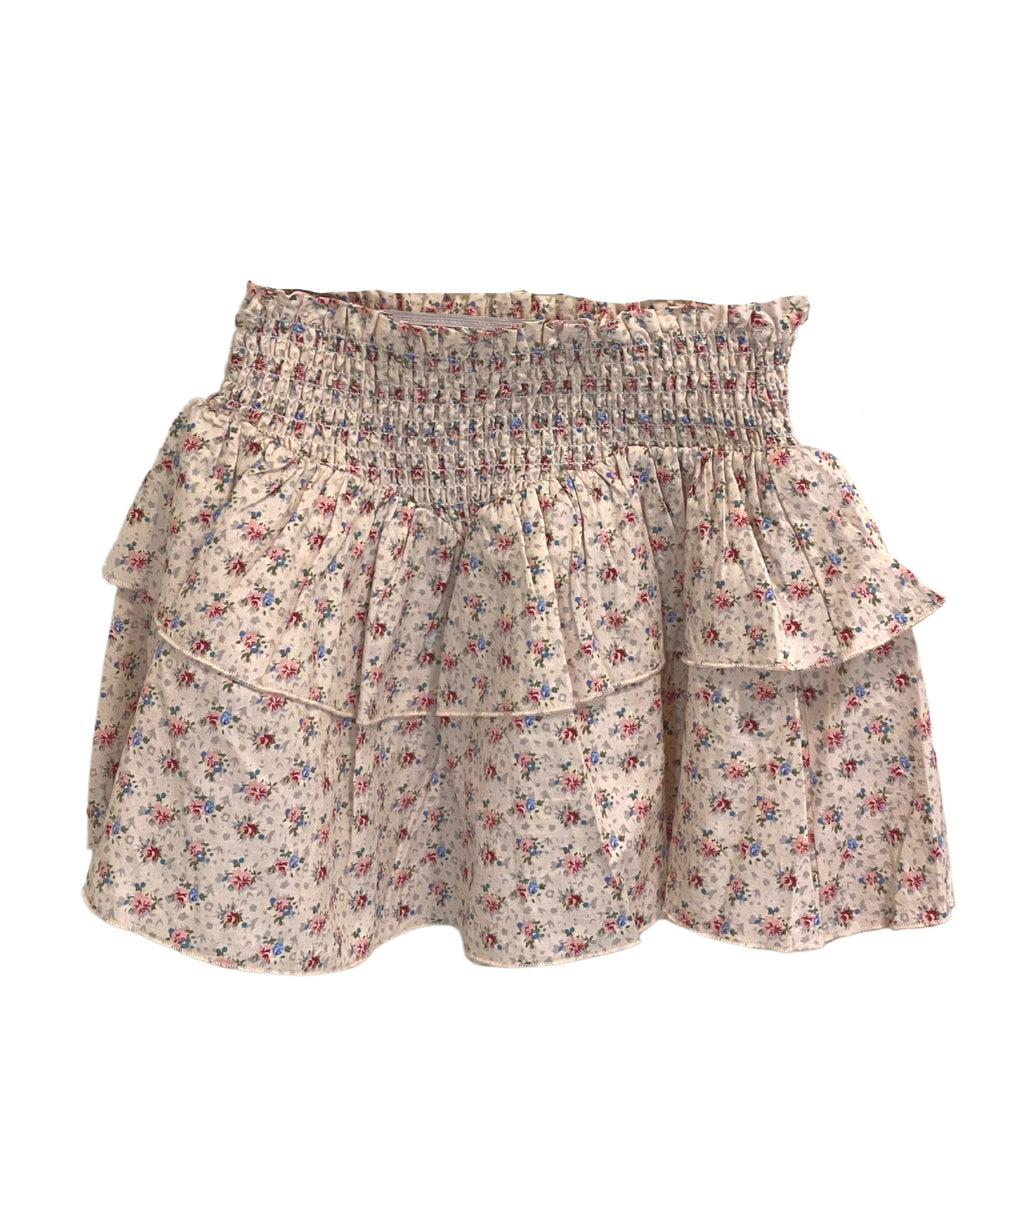 Katie J NYC Girls Brooke Pink Roses Floral Skirt